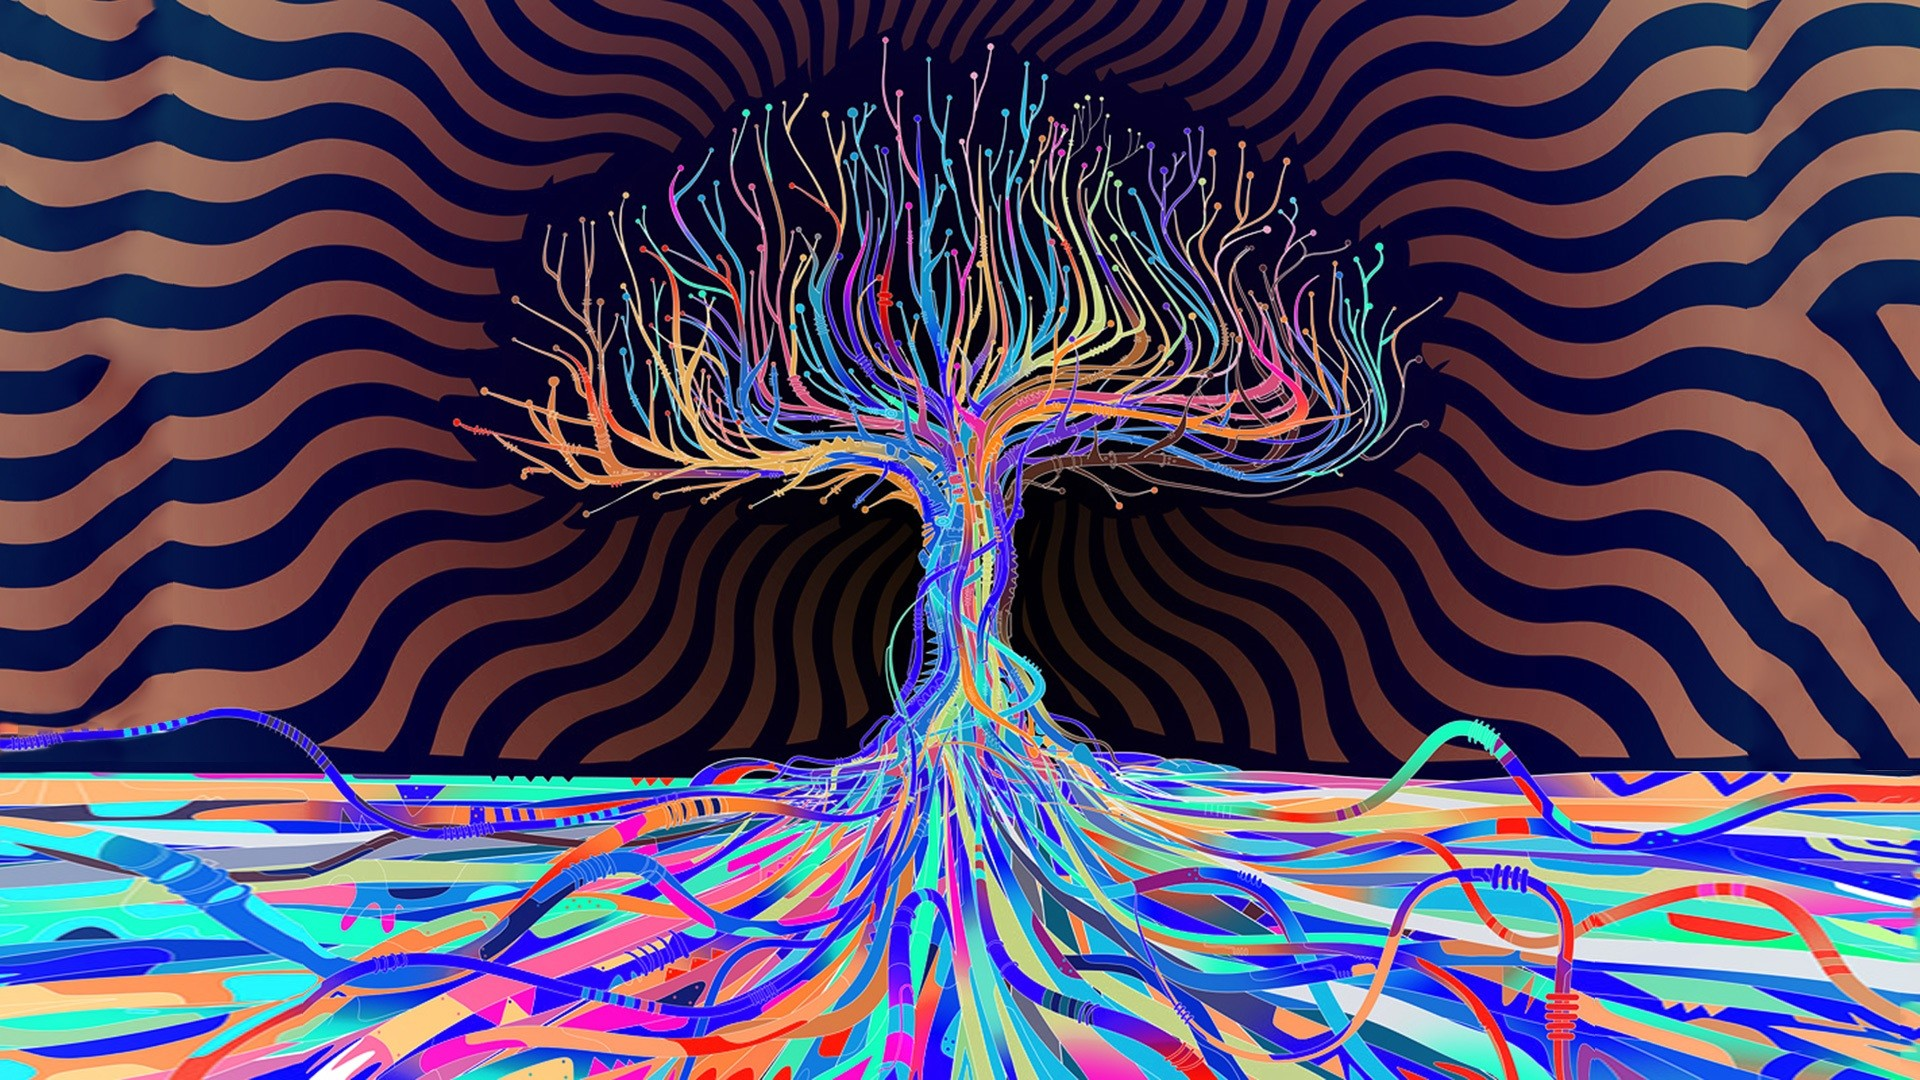 1920x1080 psychedelic hd wallpapers trees desktop wallpapers high definition monitor  download free amazing background photos artwork 1920×1080 Wallpaper HD